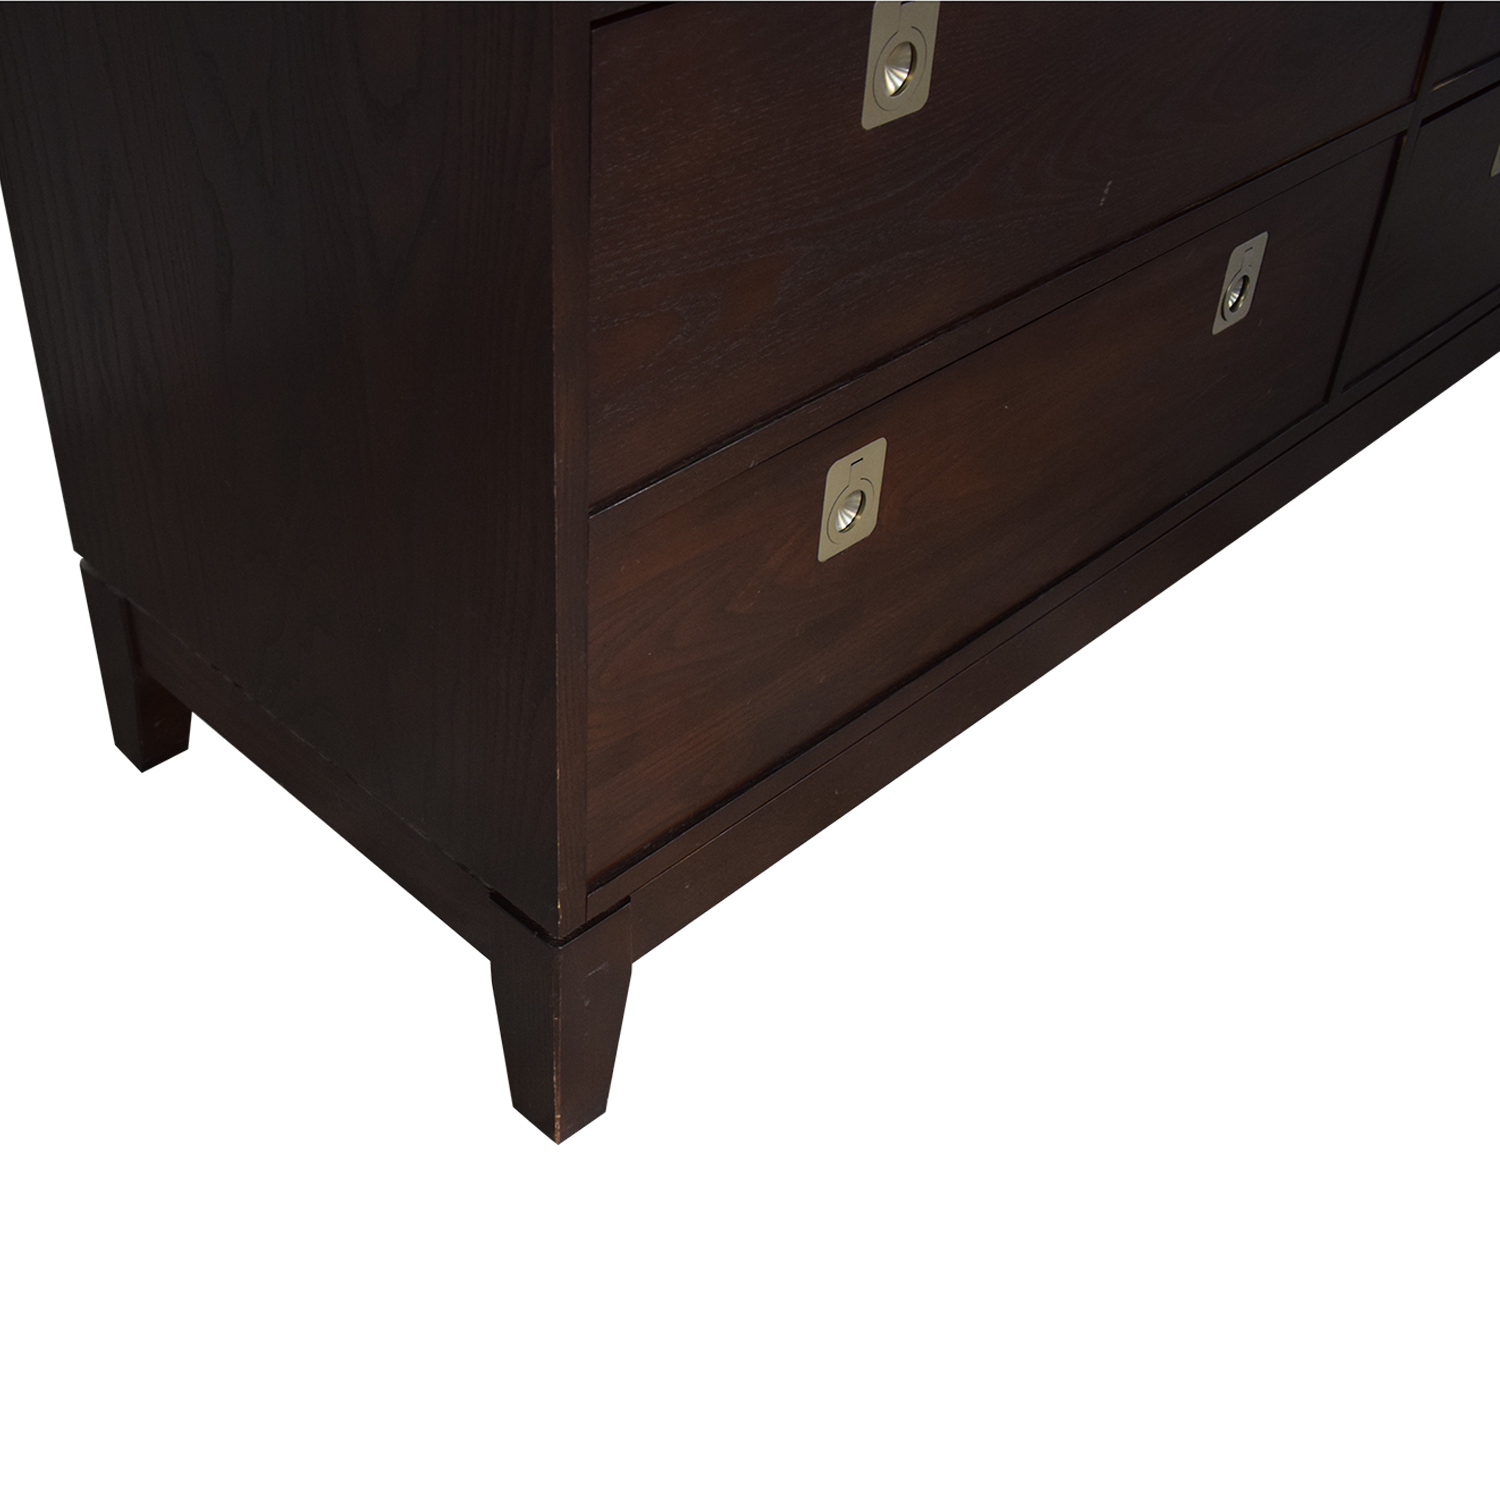 Vermont Tubbs Vermont Tubbs Bloomingdale's Six Drawer Dresser Dressers